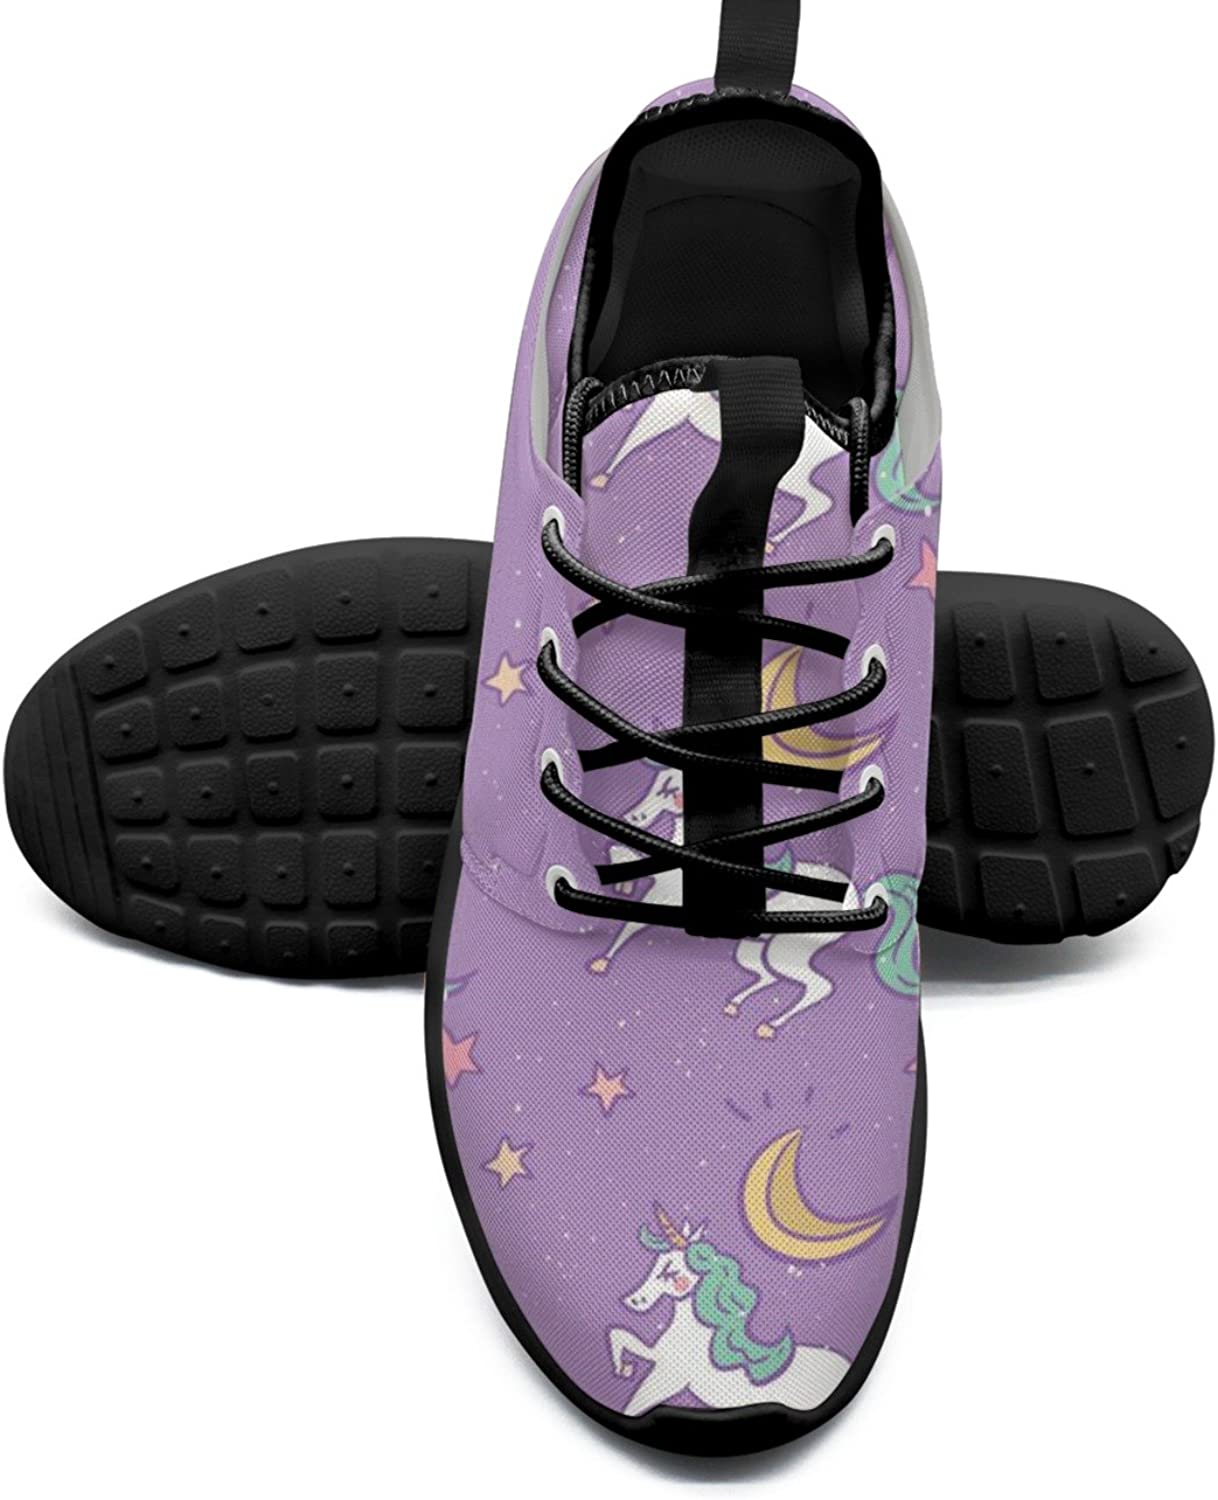 Cute Unicorn Moon And Stars Printing Women's Sneakers shoes Hip Hop Mesh Lightweight Basketball Sneakers